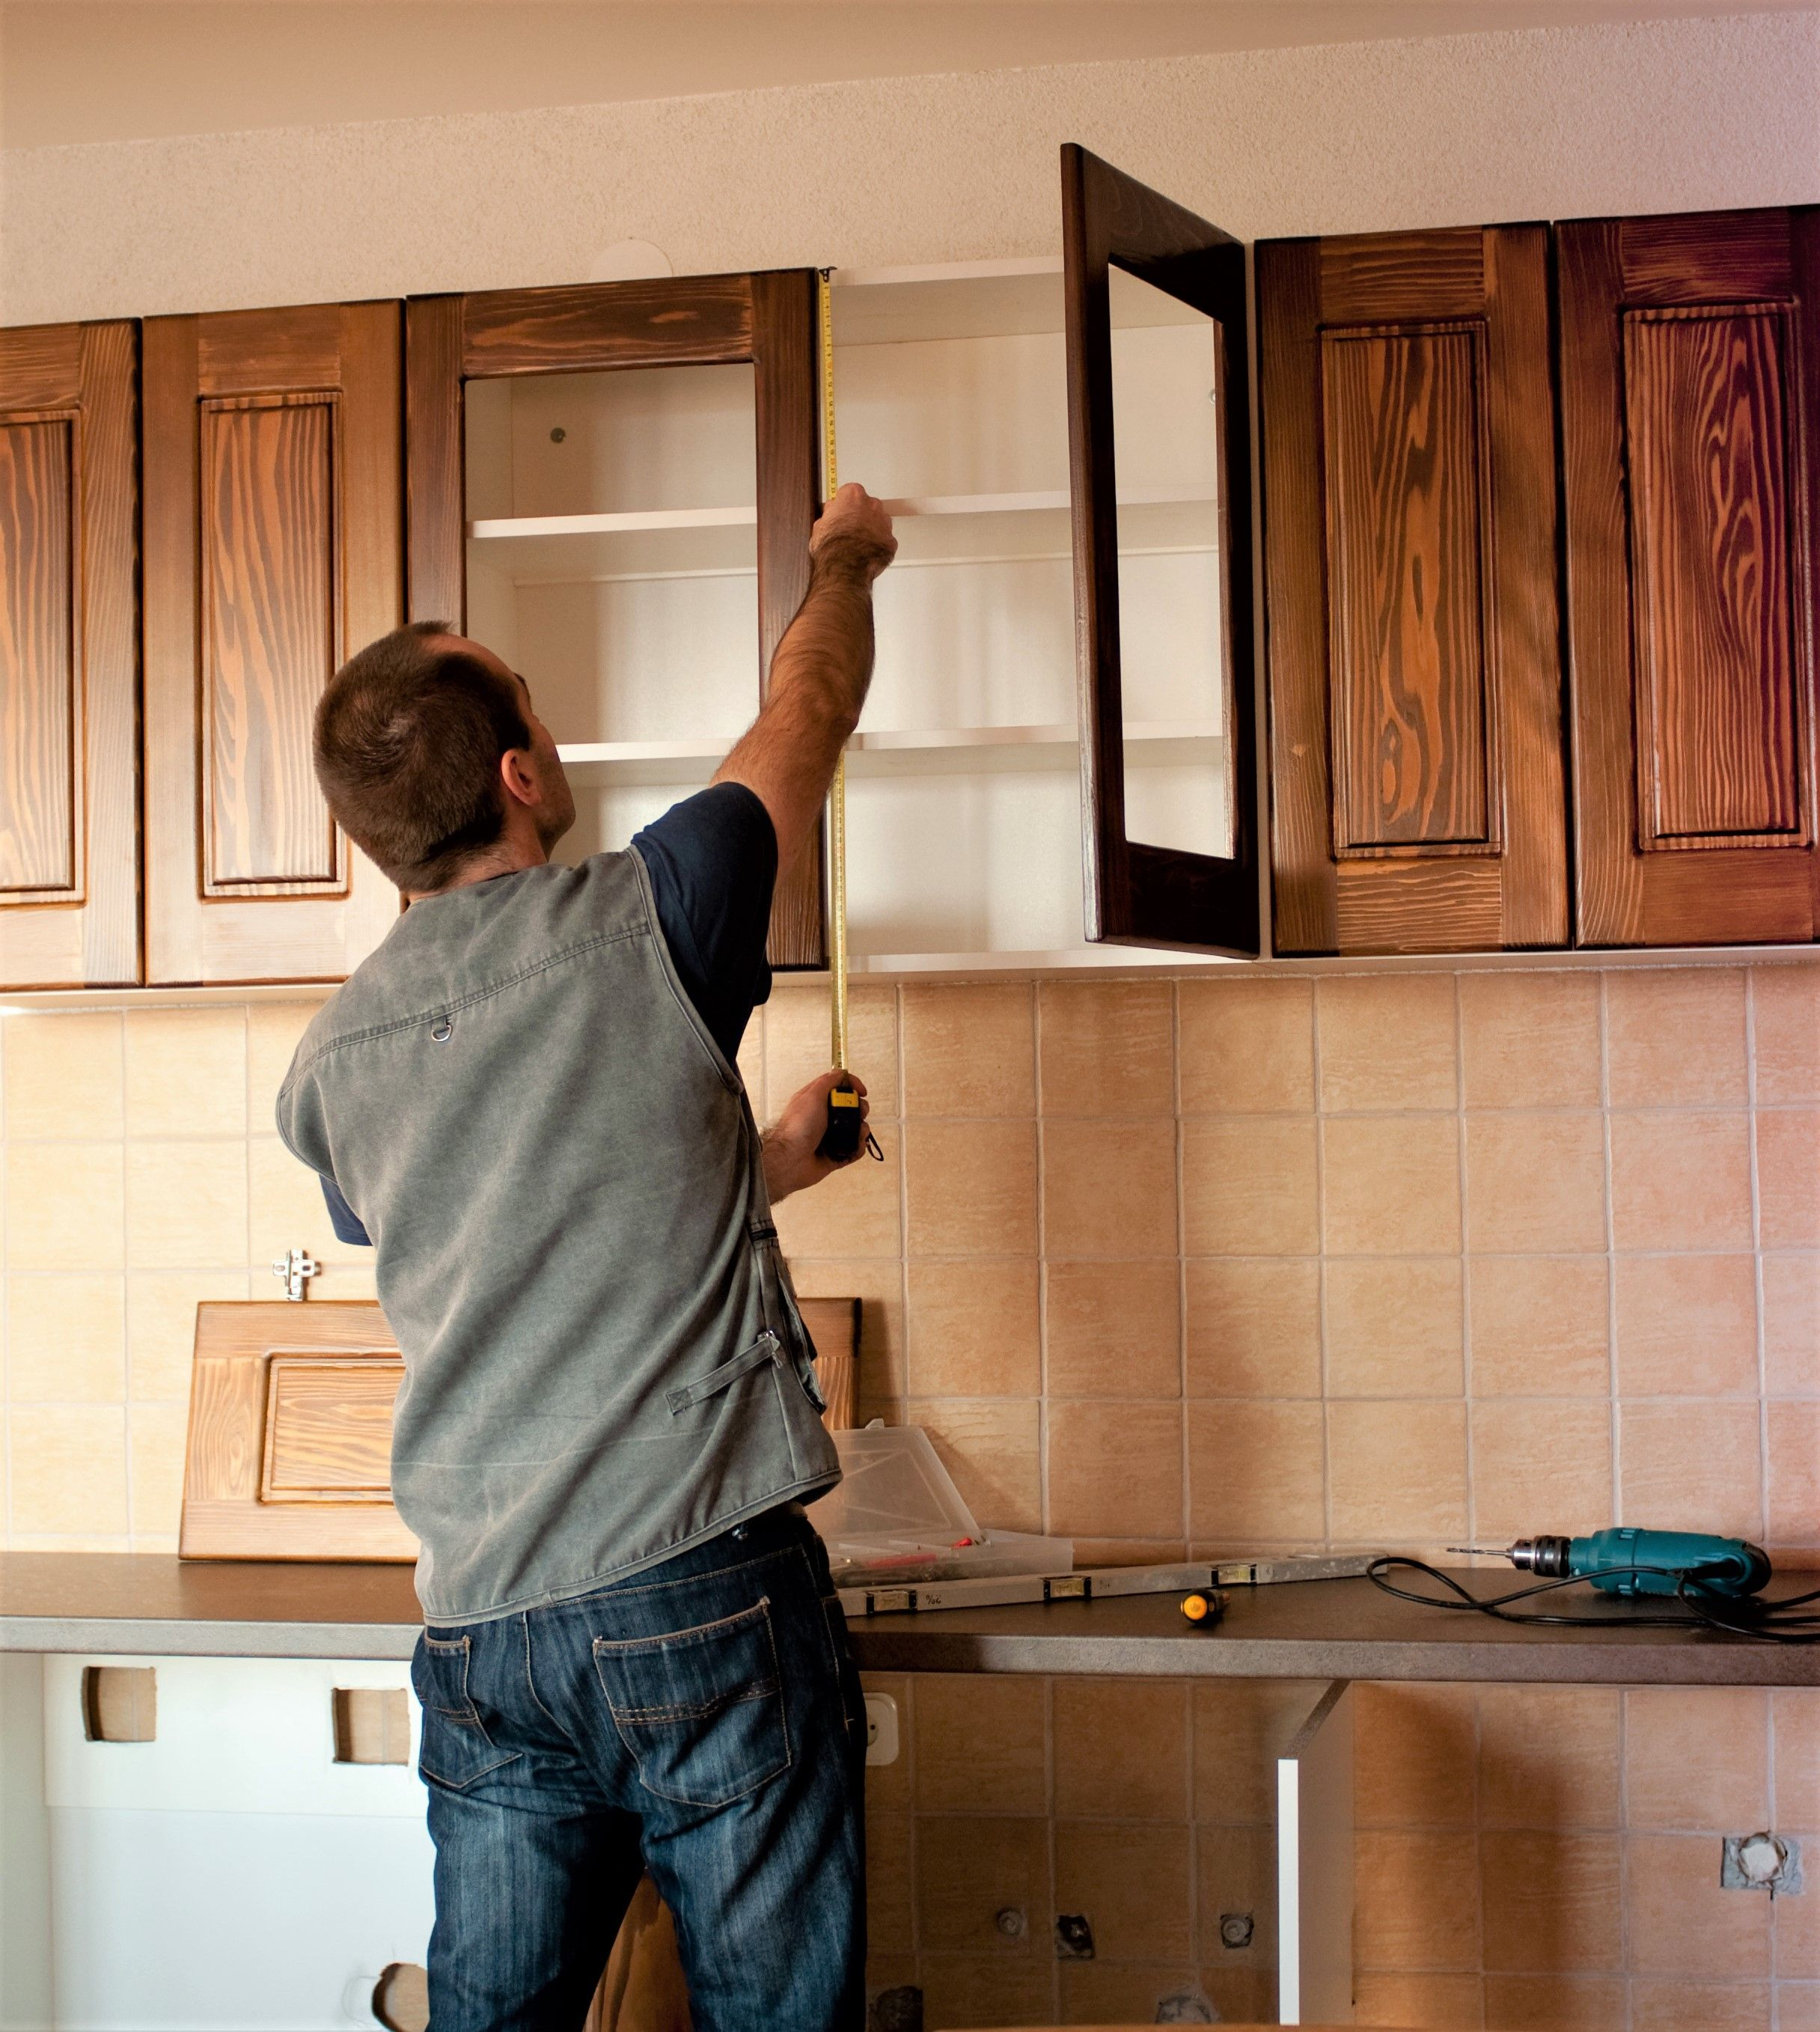 Installing Kitchen Cabinets In 2020 Kitchen Remodel Cost Affordable Kitchen Remodeling Kitchen Cabinet Dimensions